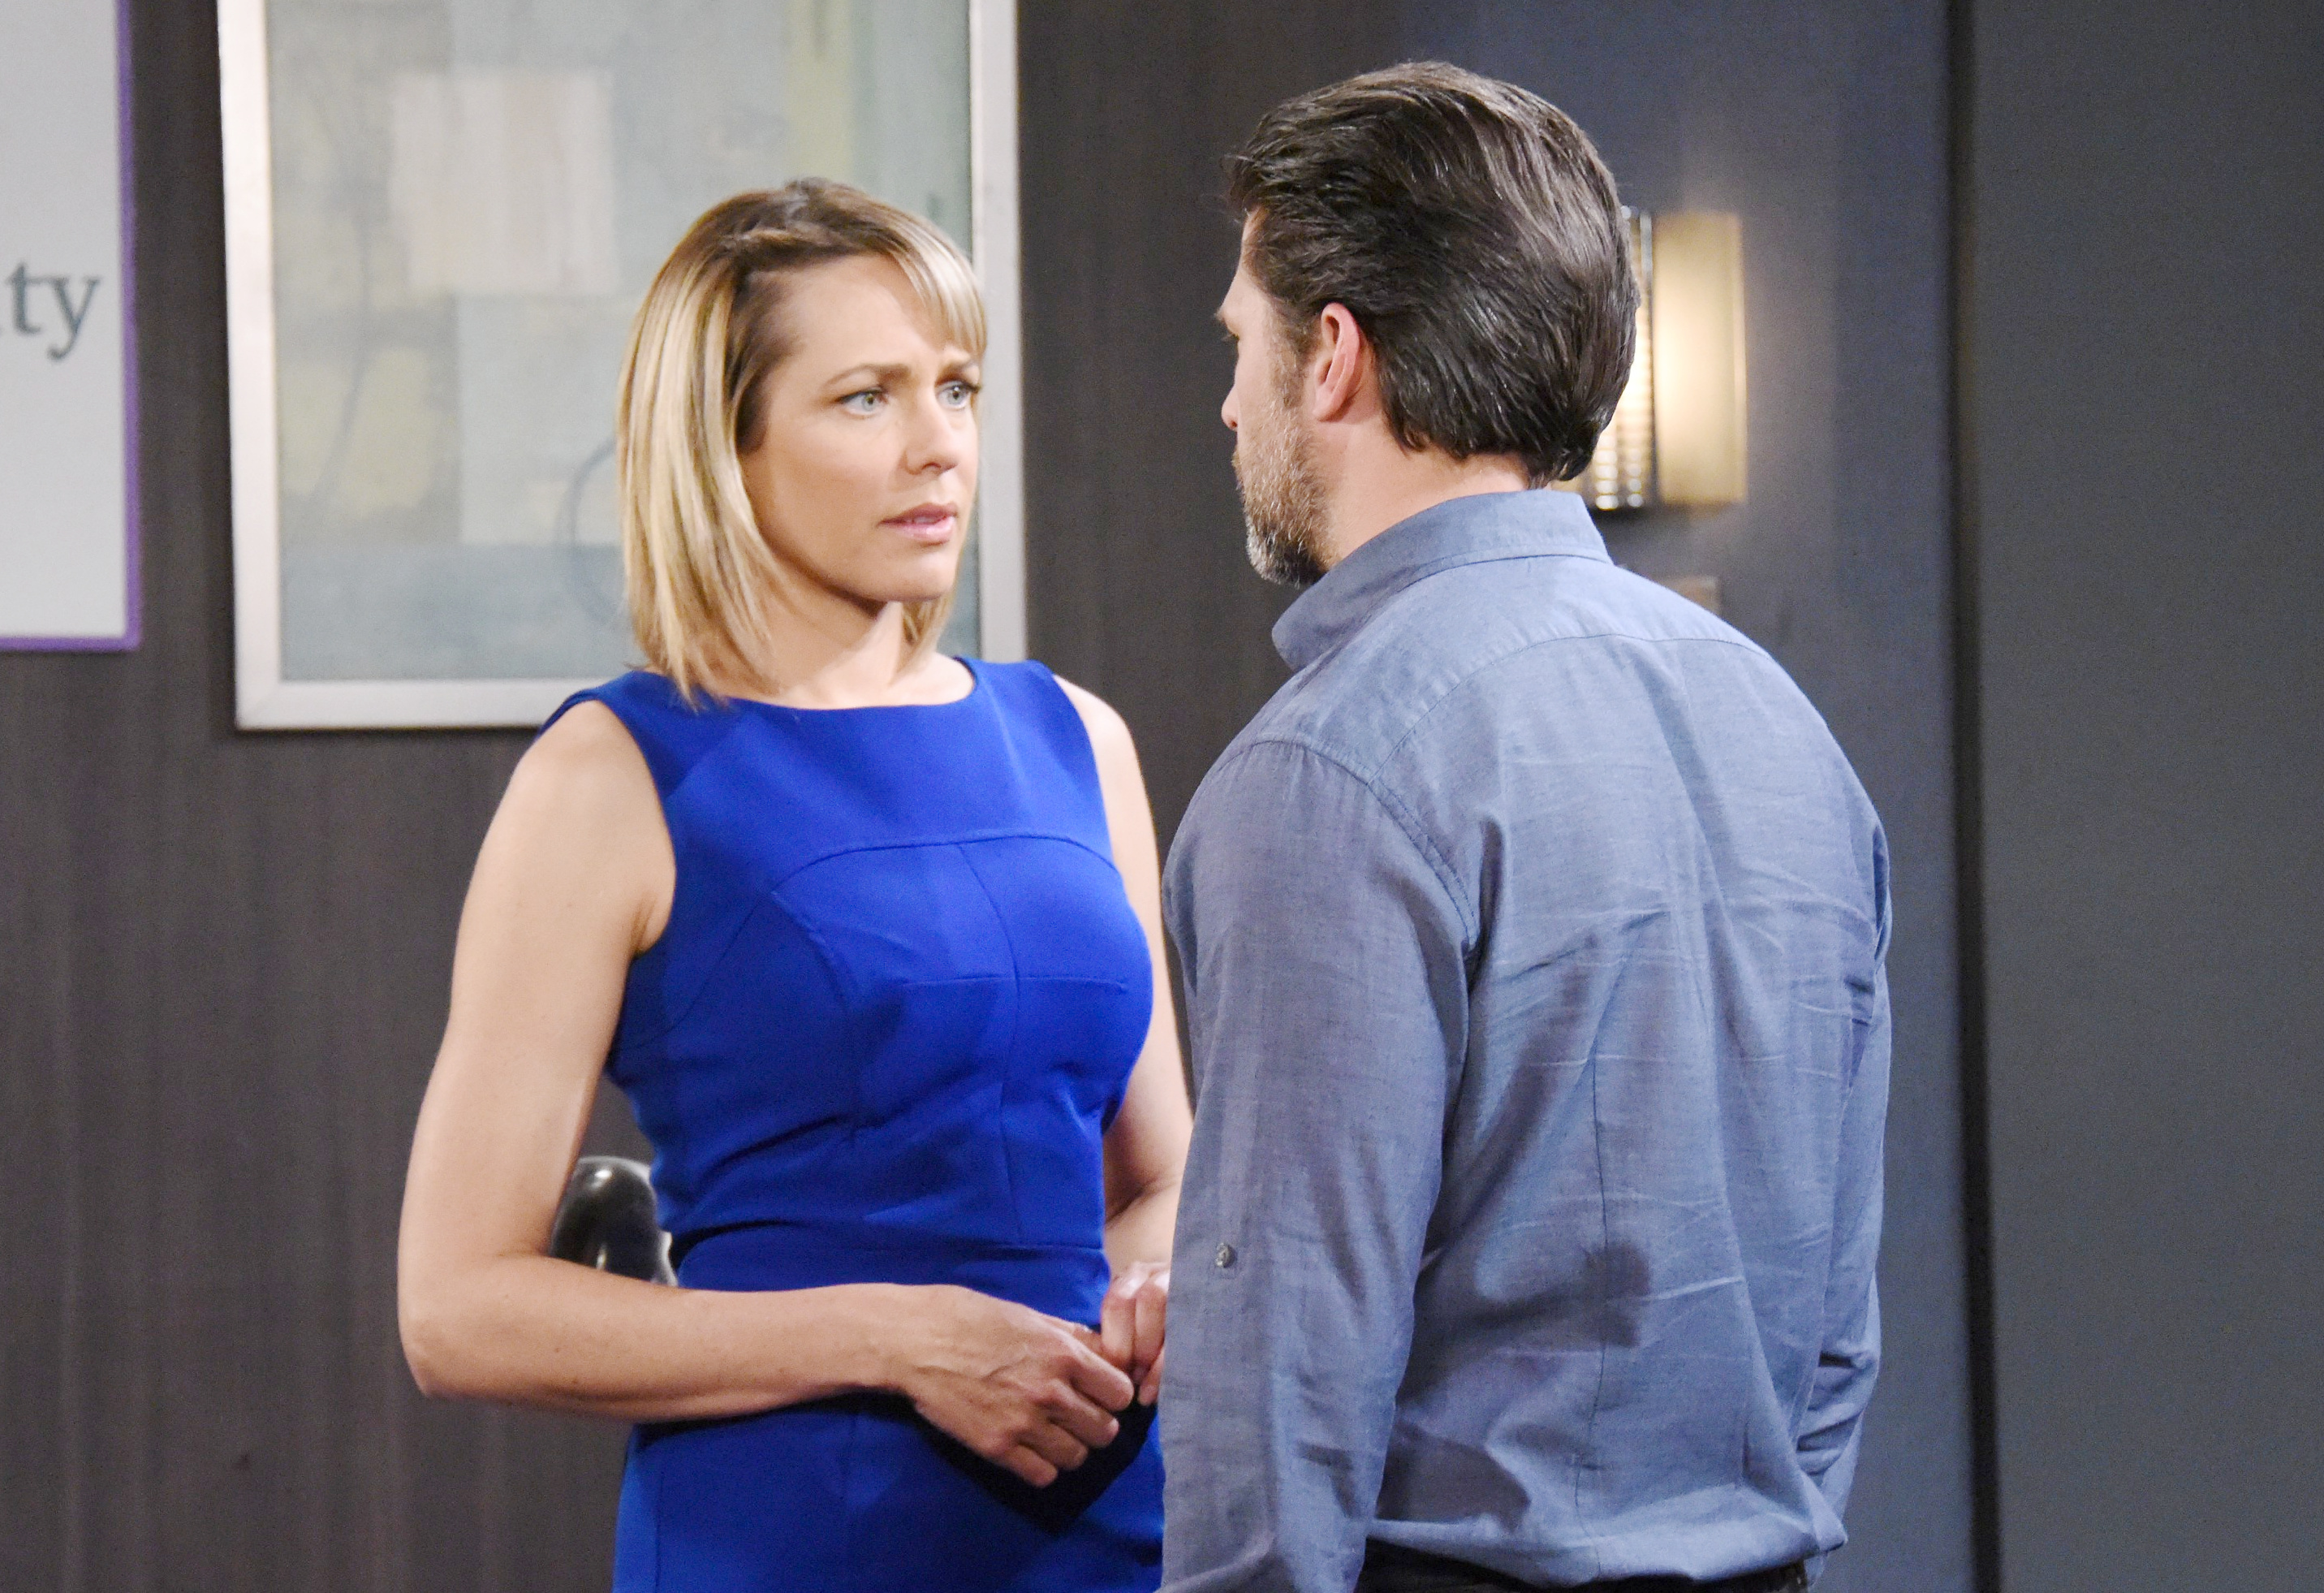 The Young and the Restless Spoilers: Eric and Nicole share a close moment.